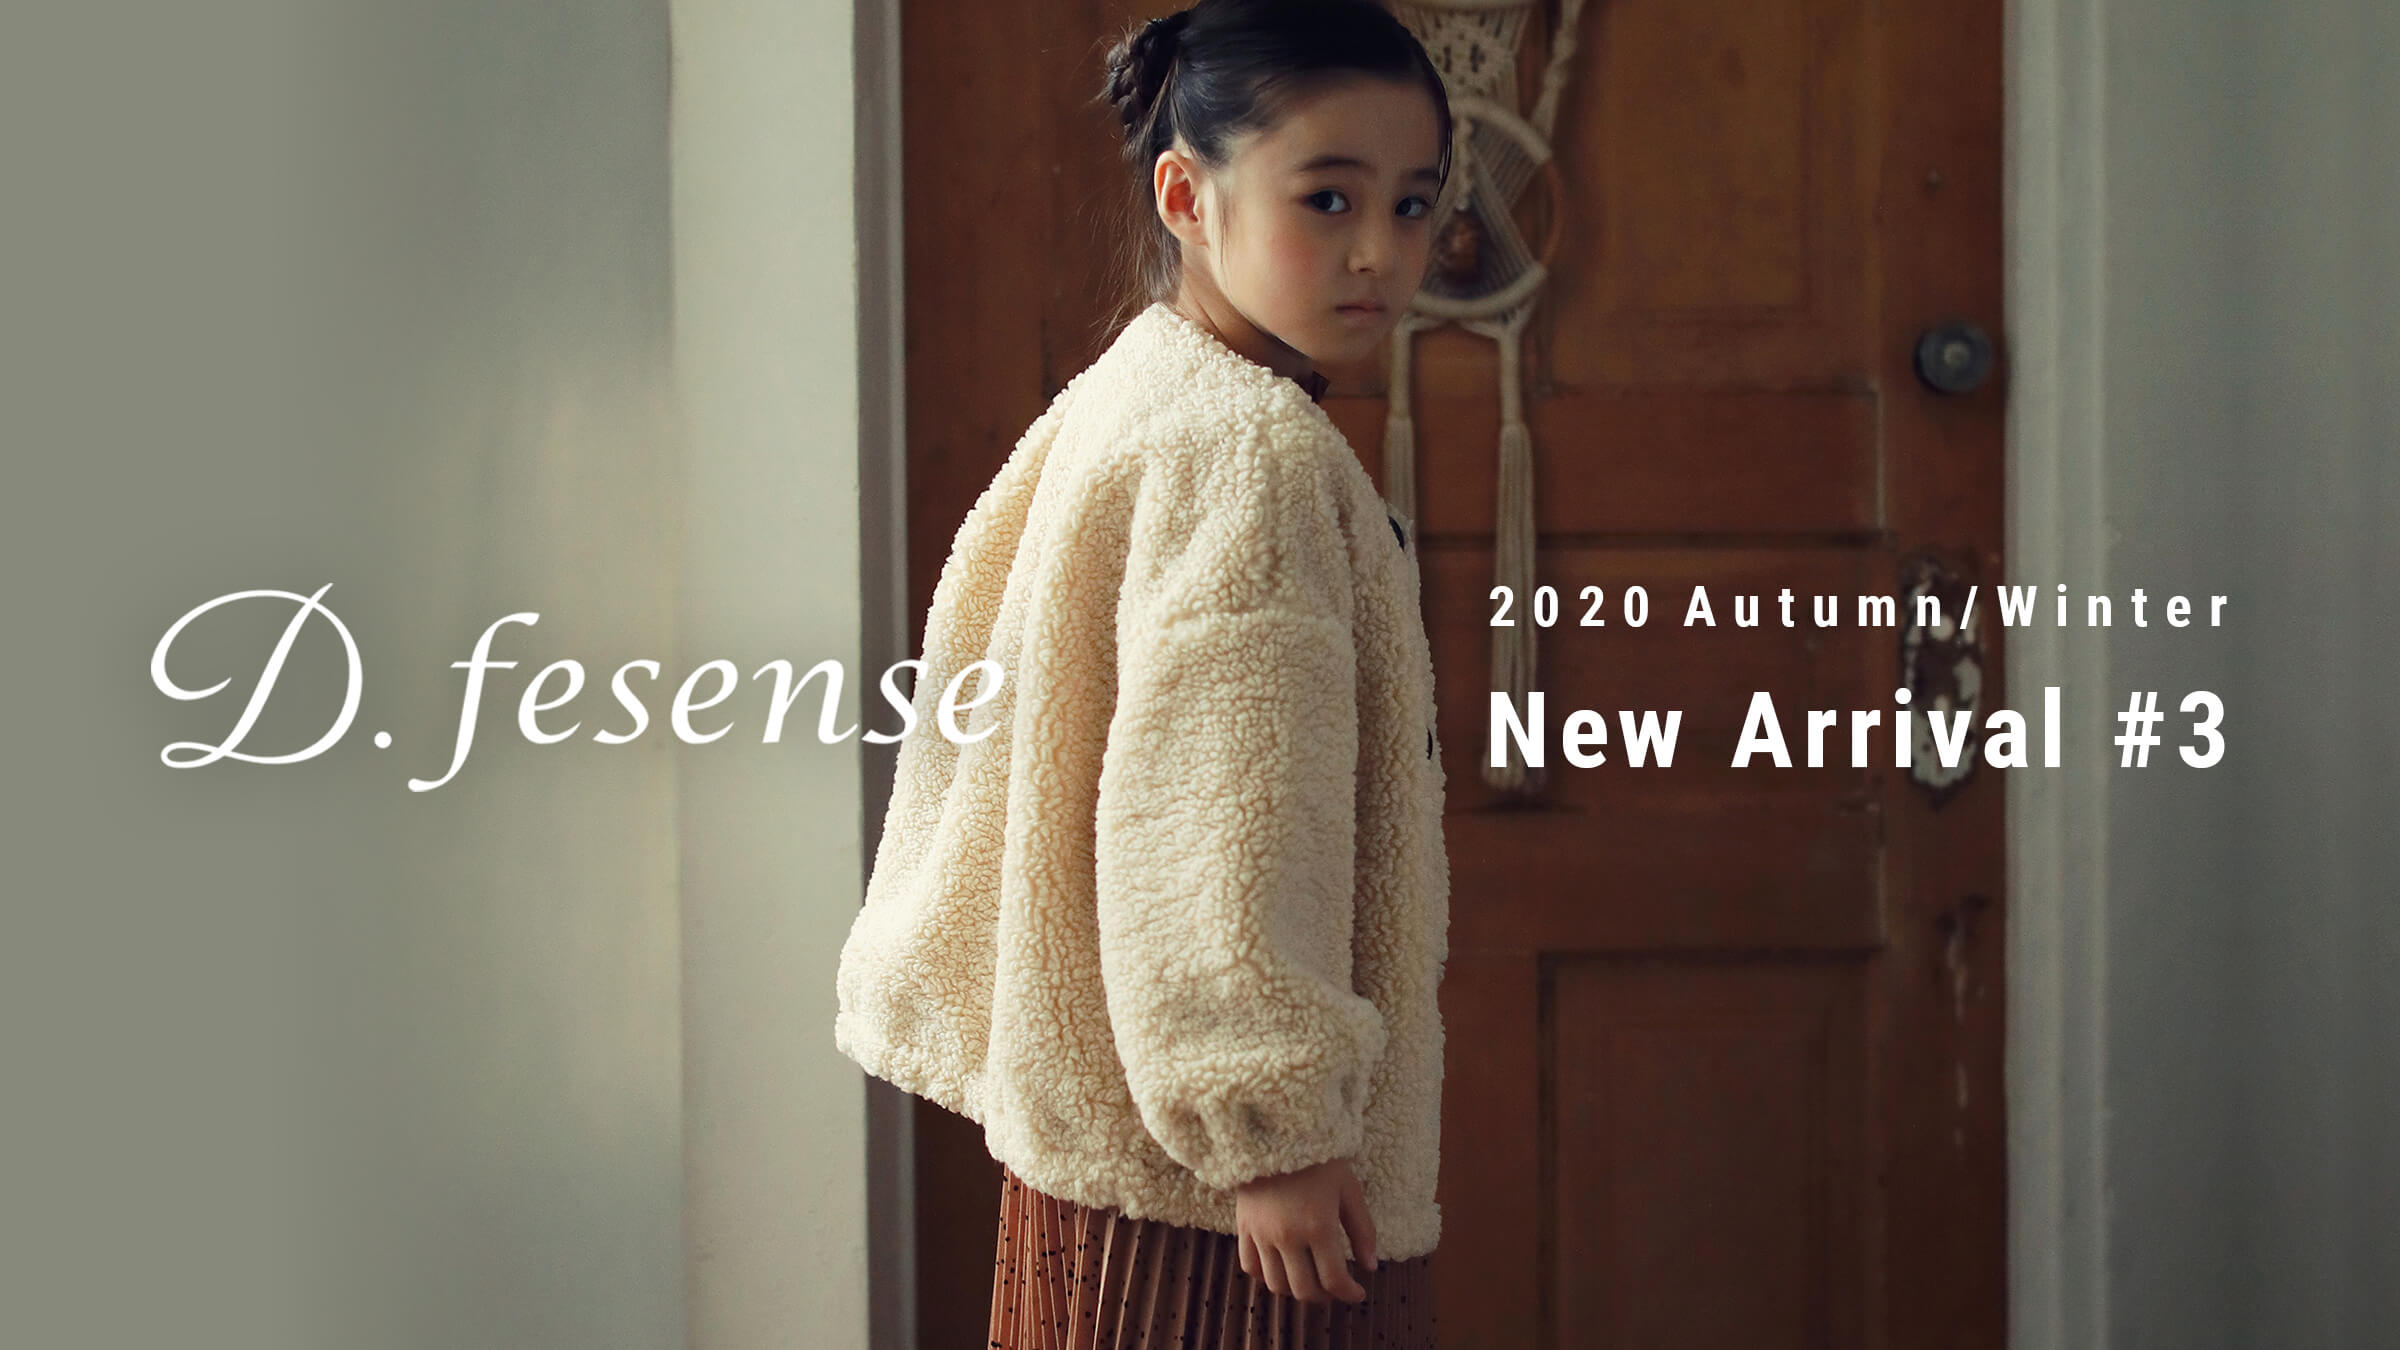 D.fesense Autumn Winter 2020